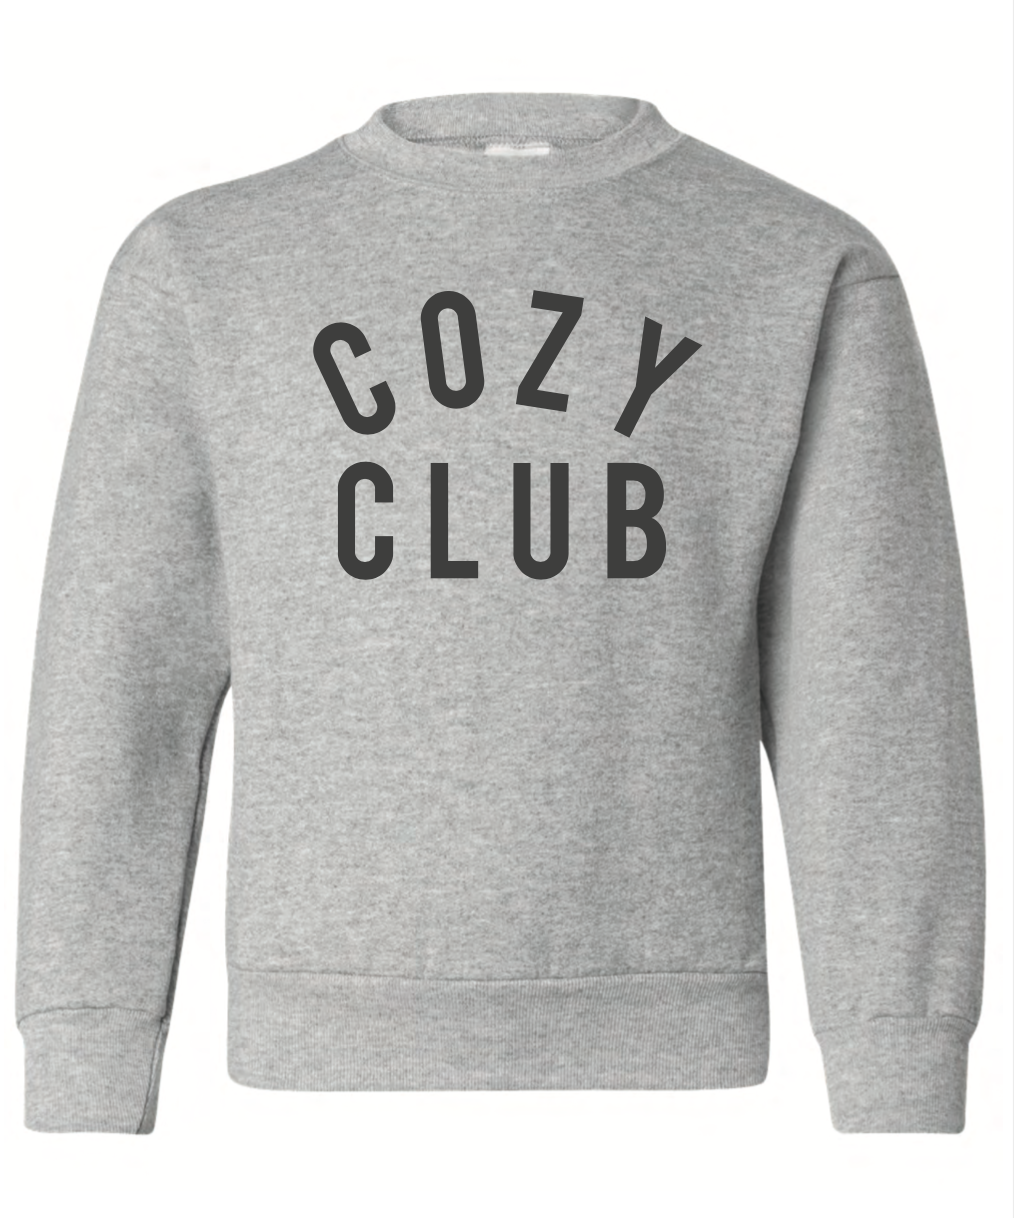 Mini Cozy Club Sweatshirt - Grey